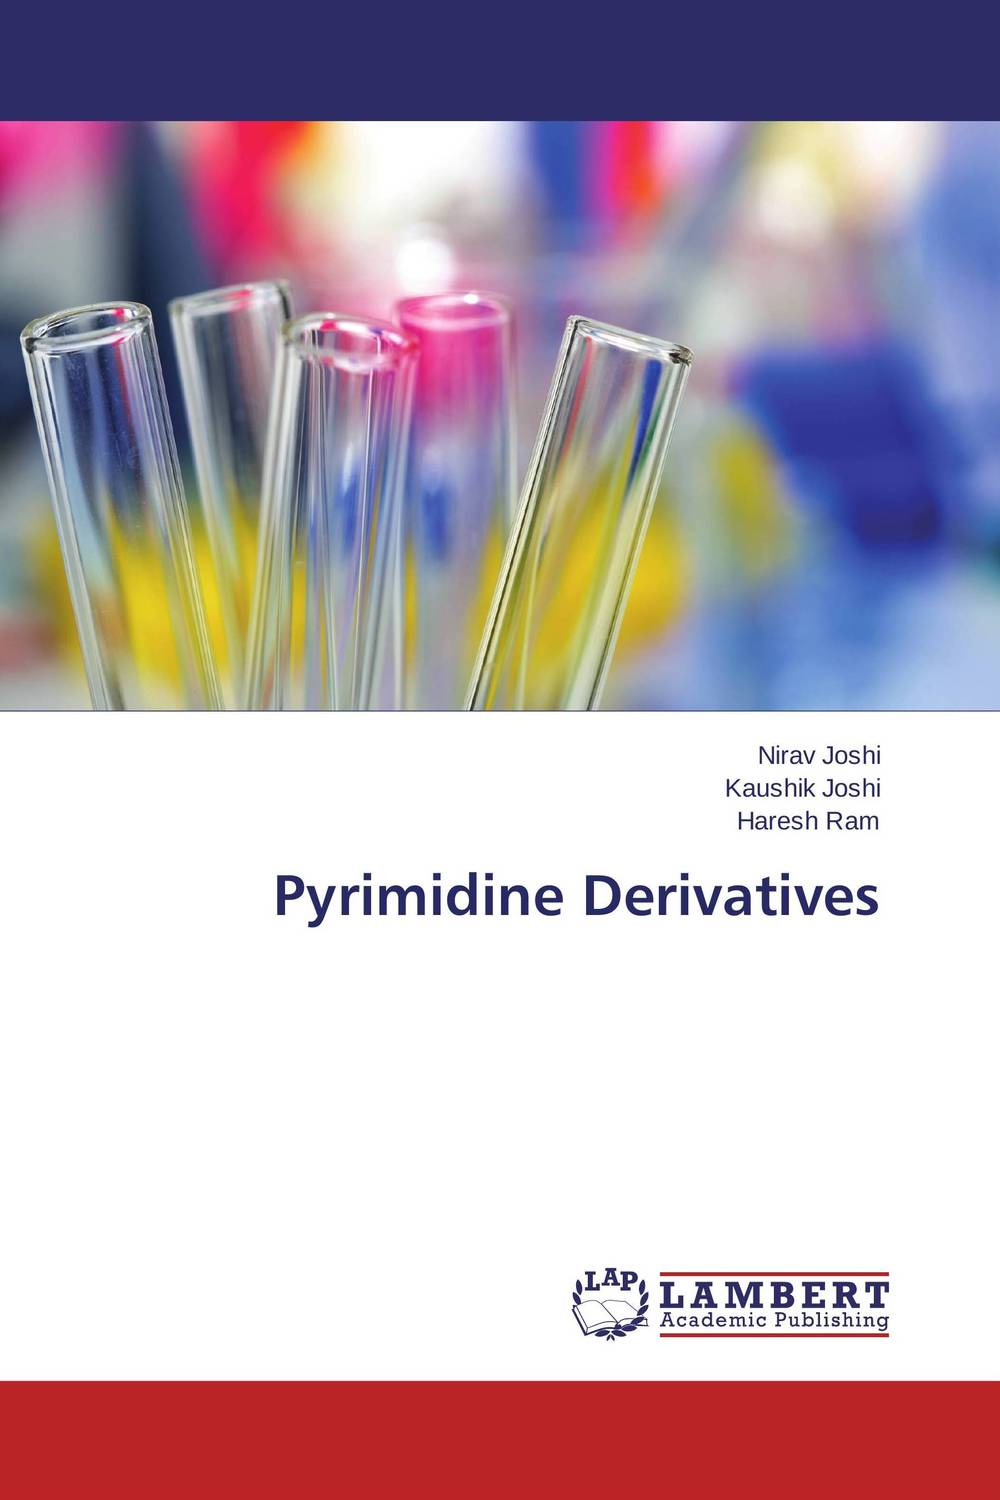 Pyrimidine Derivatives 1 box blood uric acid balance tea lower uric acid treatment gout remedios natural acido urico